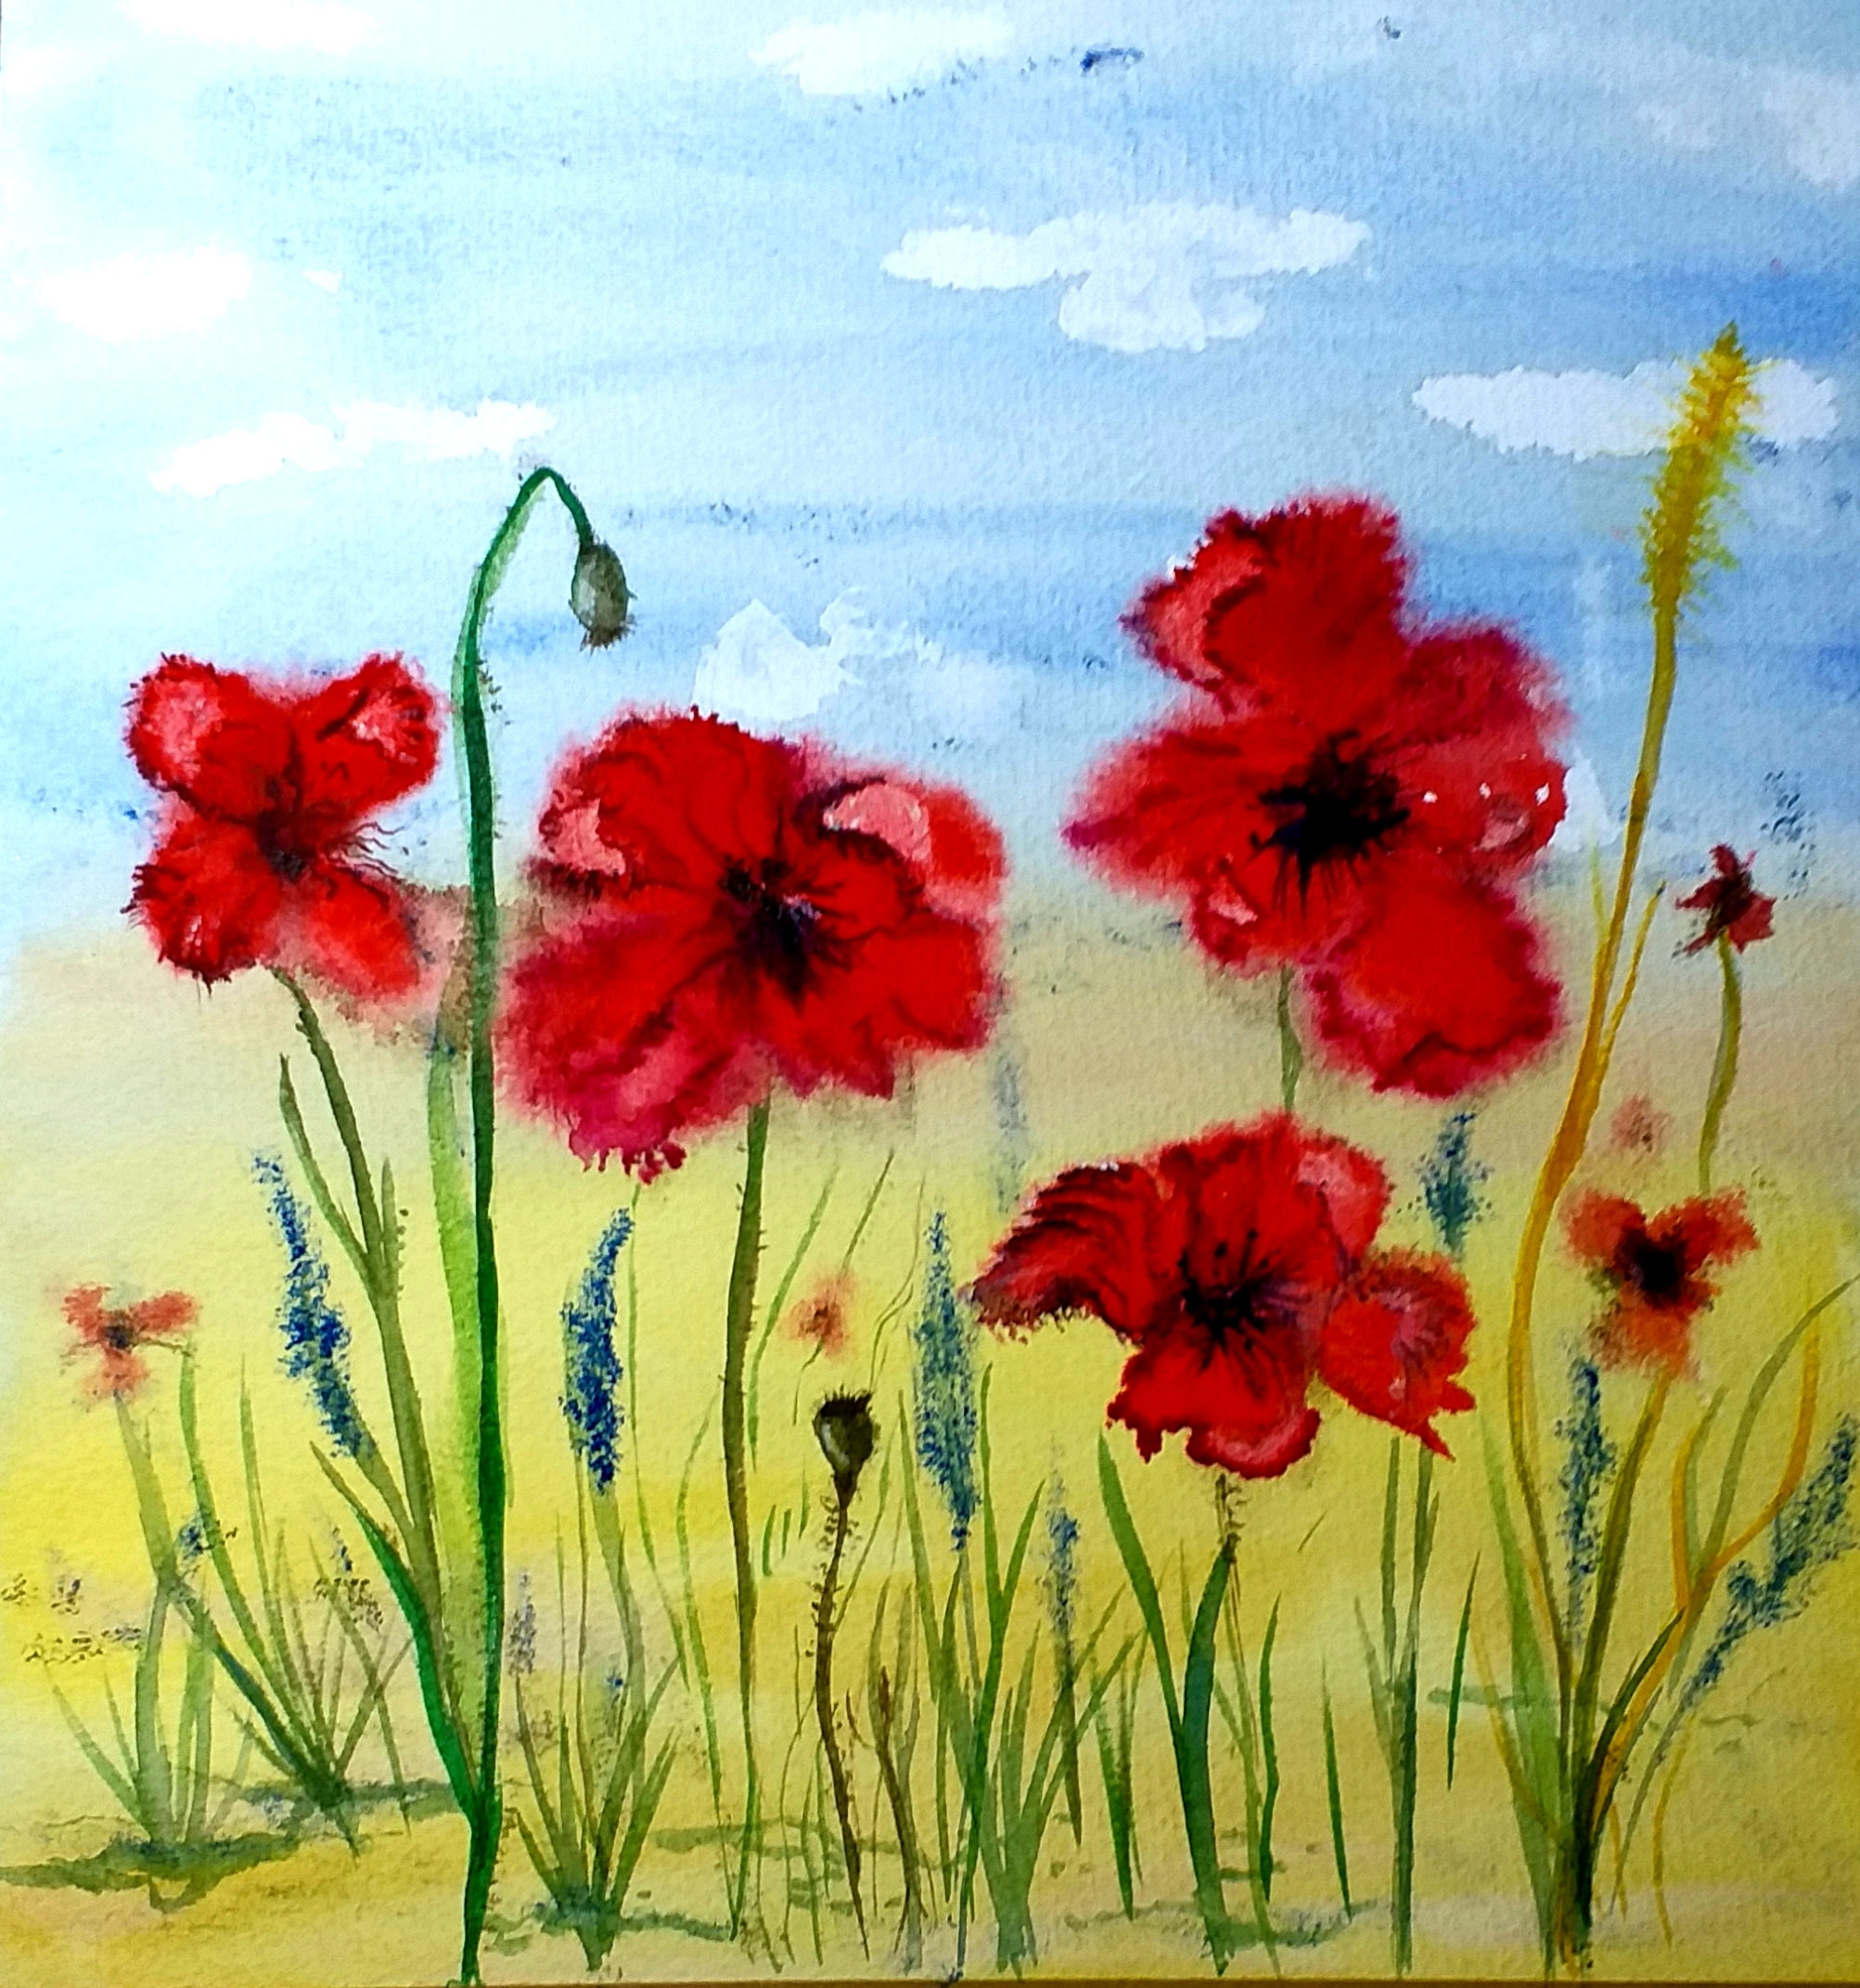 Watercolour classes for complete beginners in Art in Kidderminster.